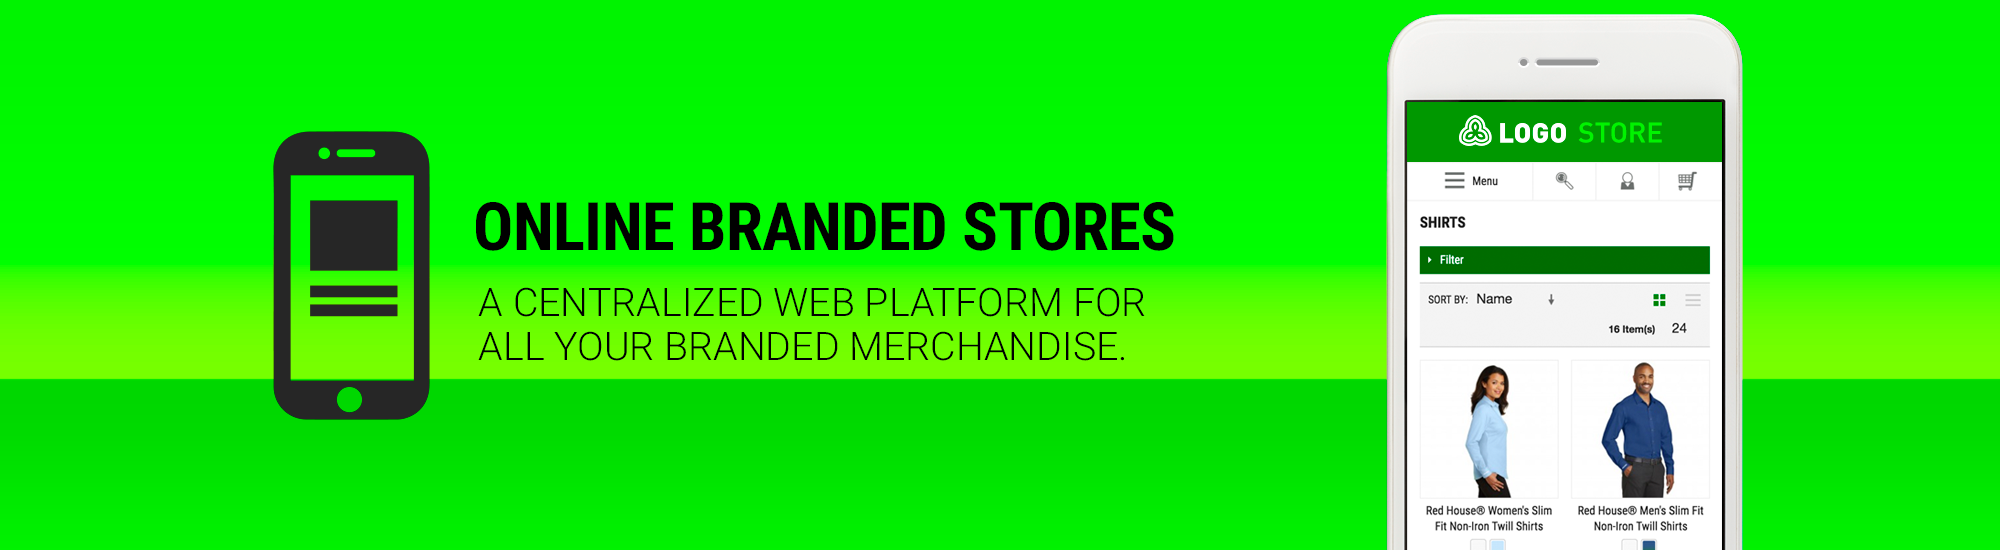 Online Branded Store